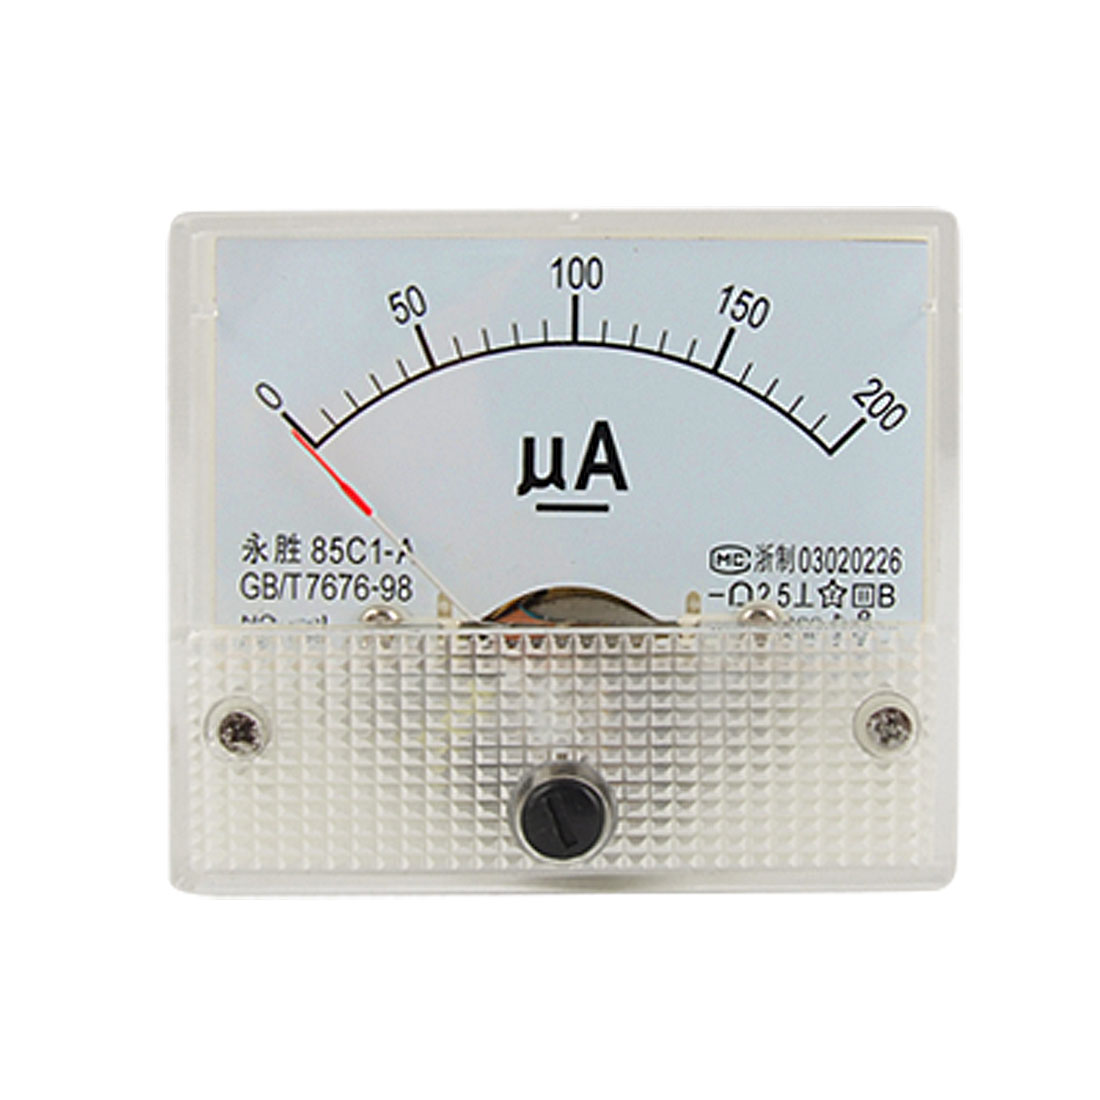 0-200uA DC Current Analog Panel Meter Amperemeter Gauge 85C1-A